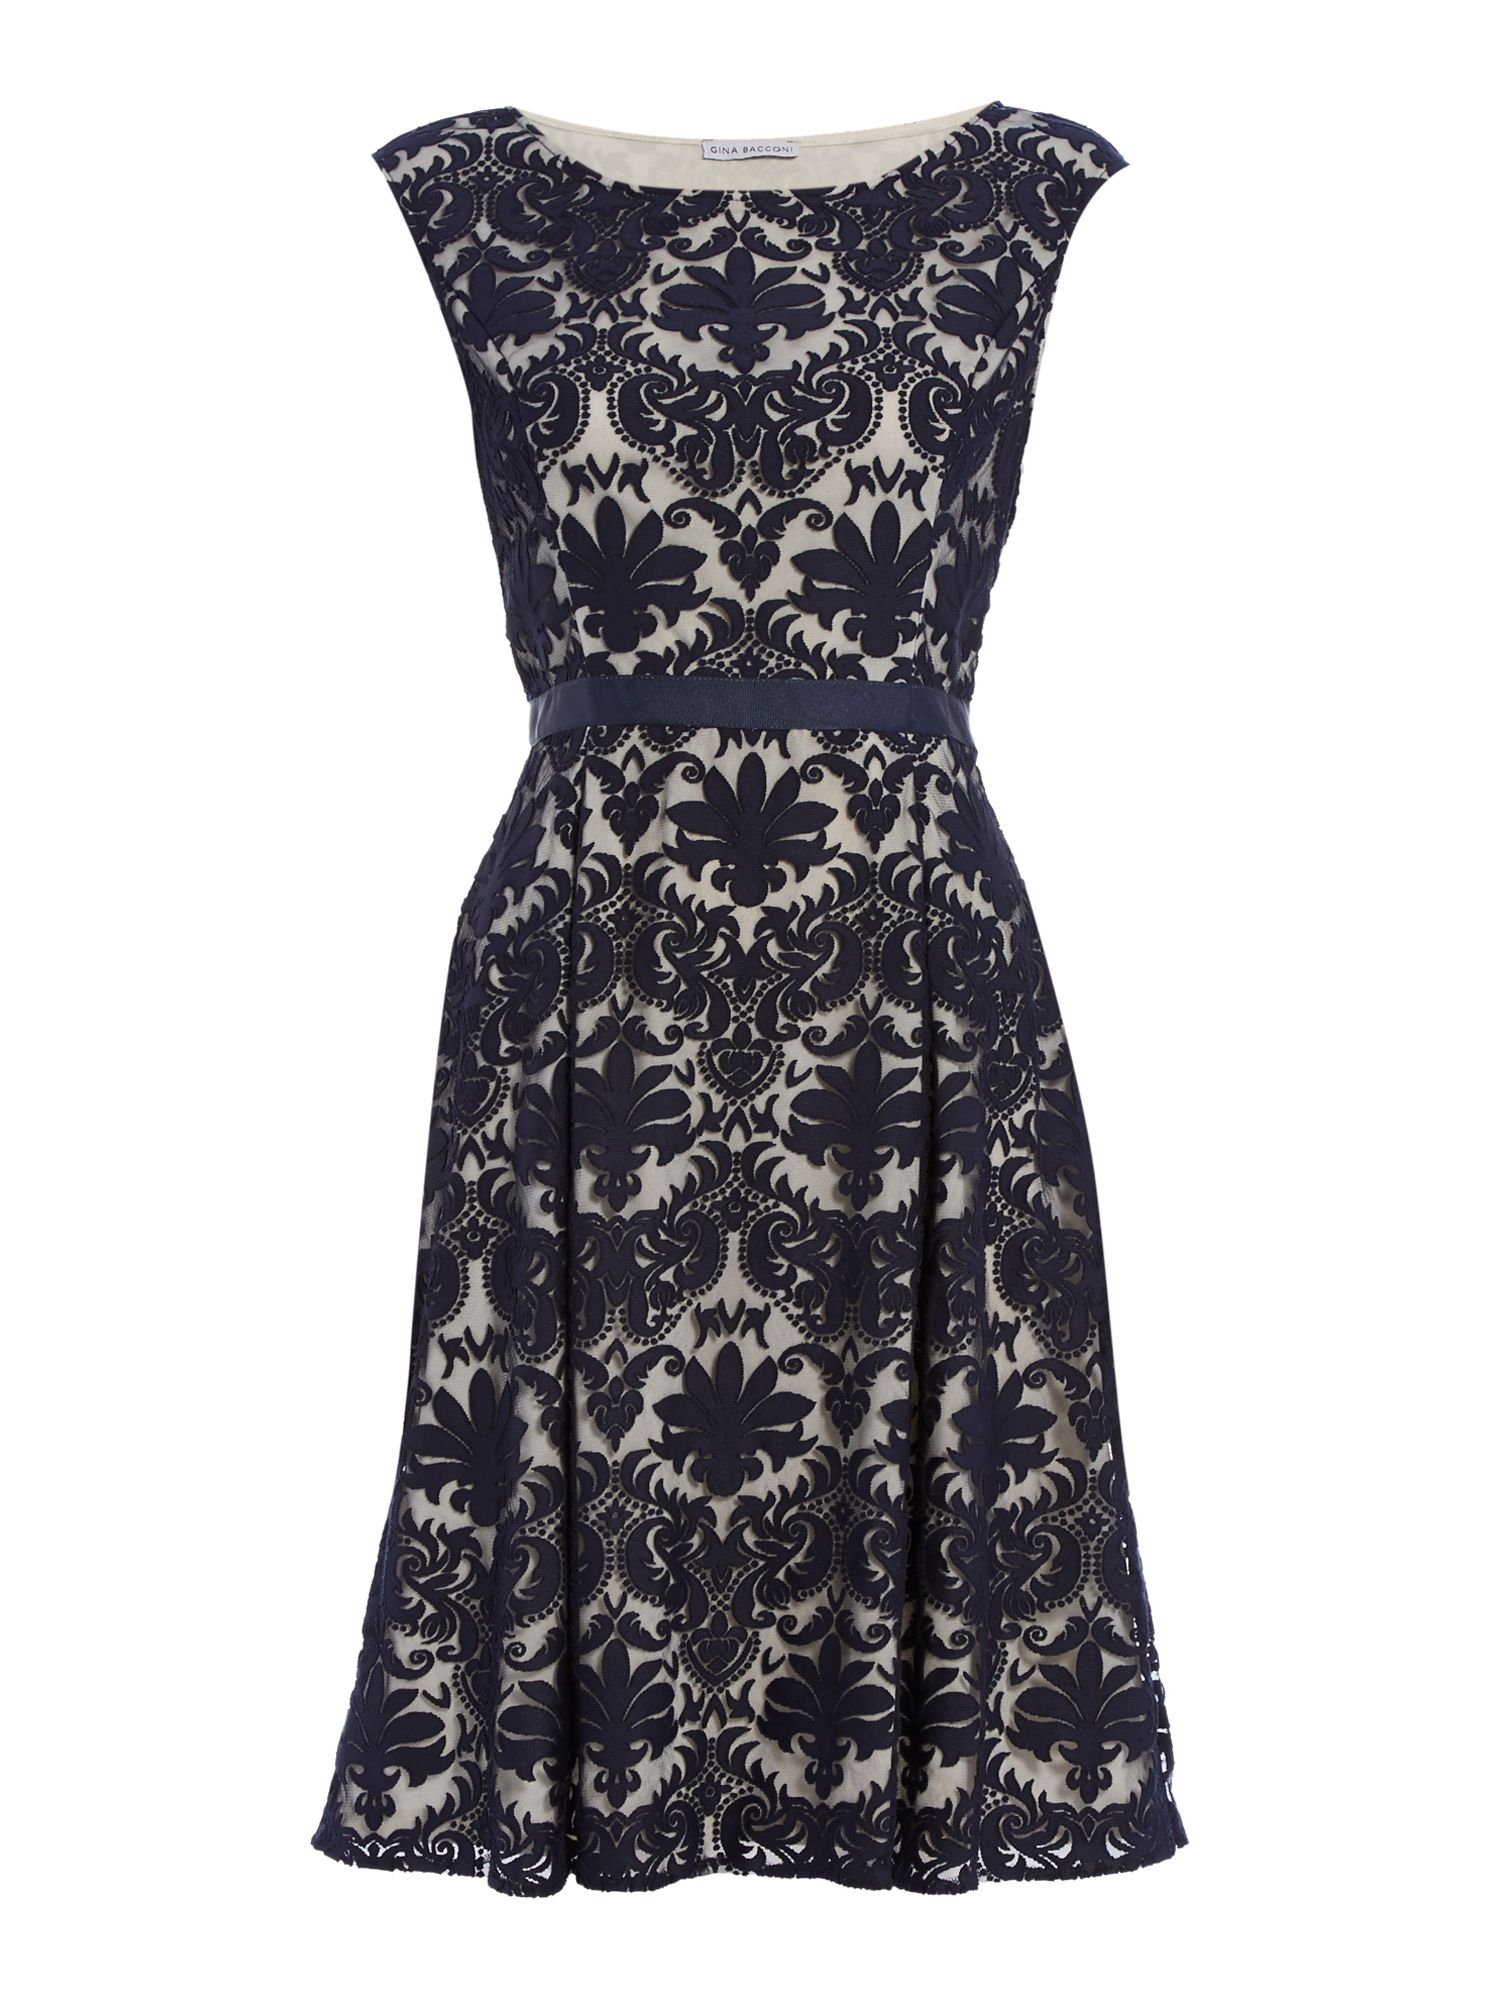 Shubette Shubette Embroidered lace fit and flare dress, Navy